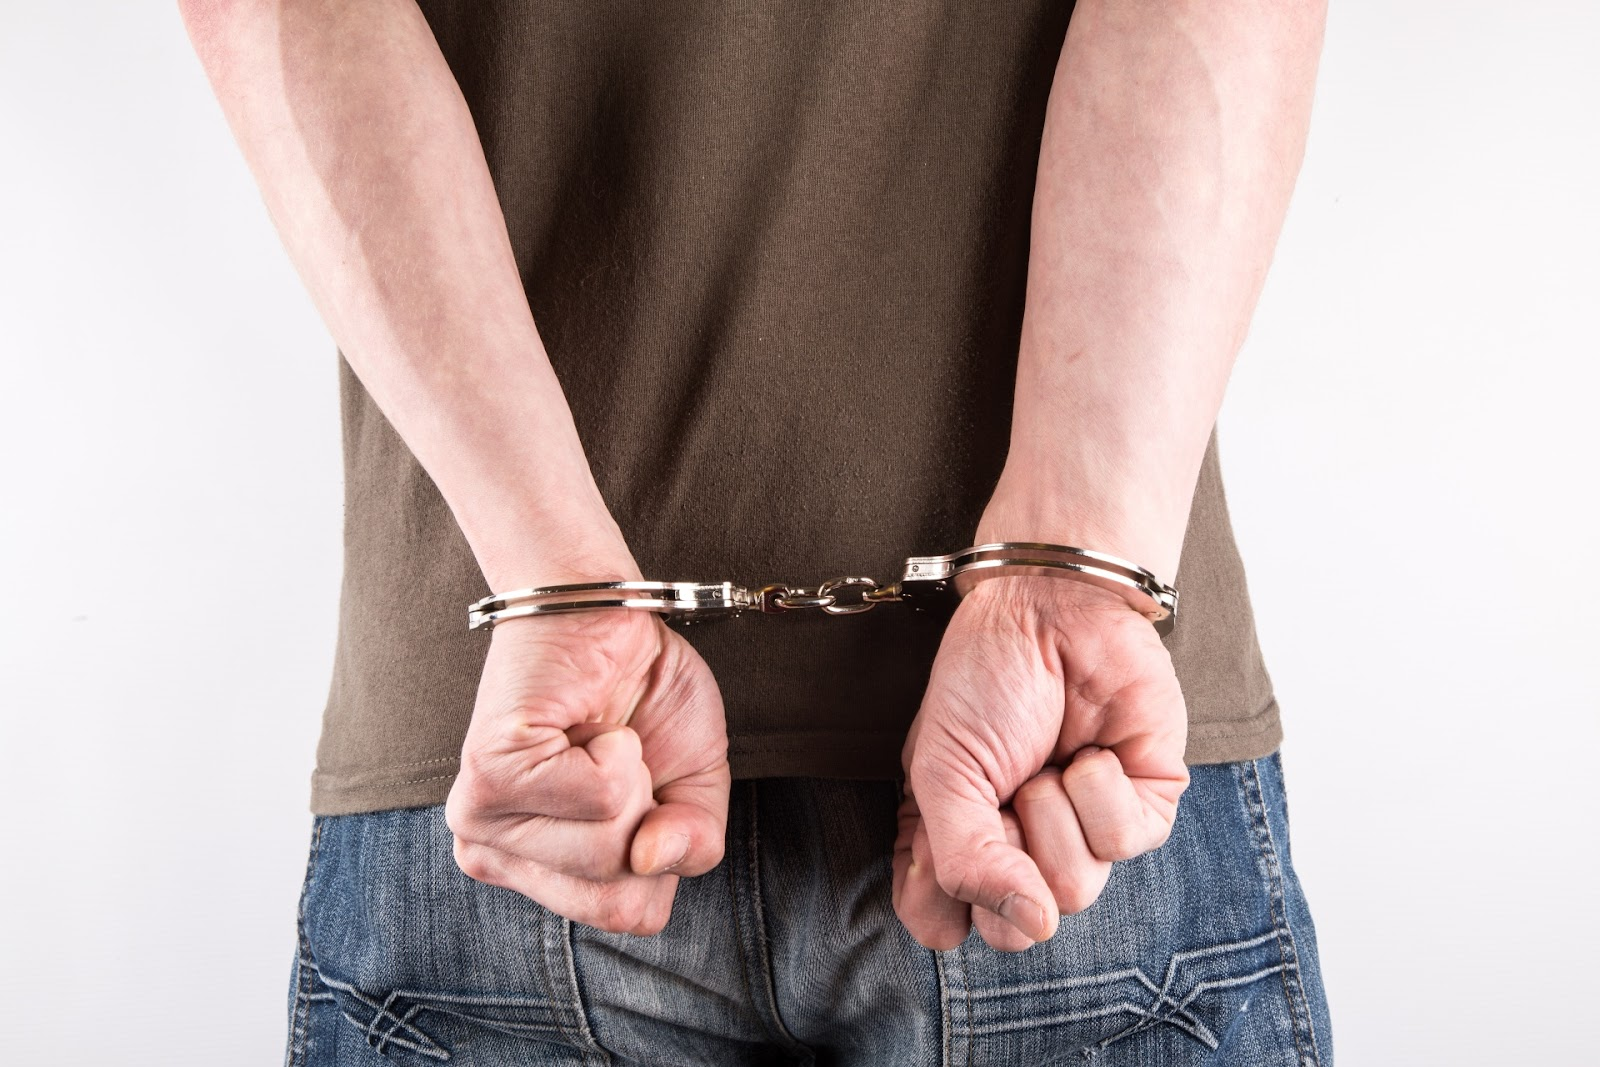 Hands In Handcuffs Free Stock Photo - Public Domain Pictures